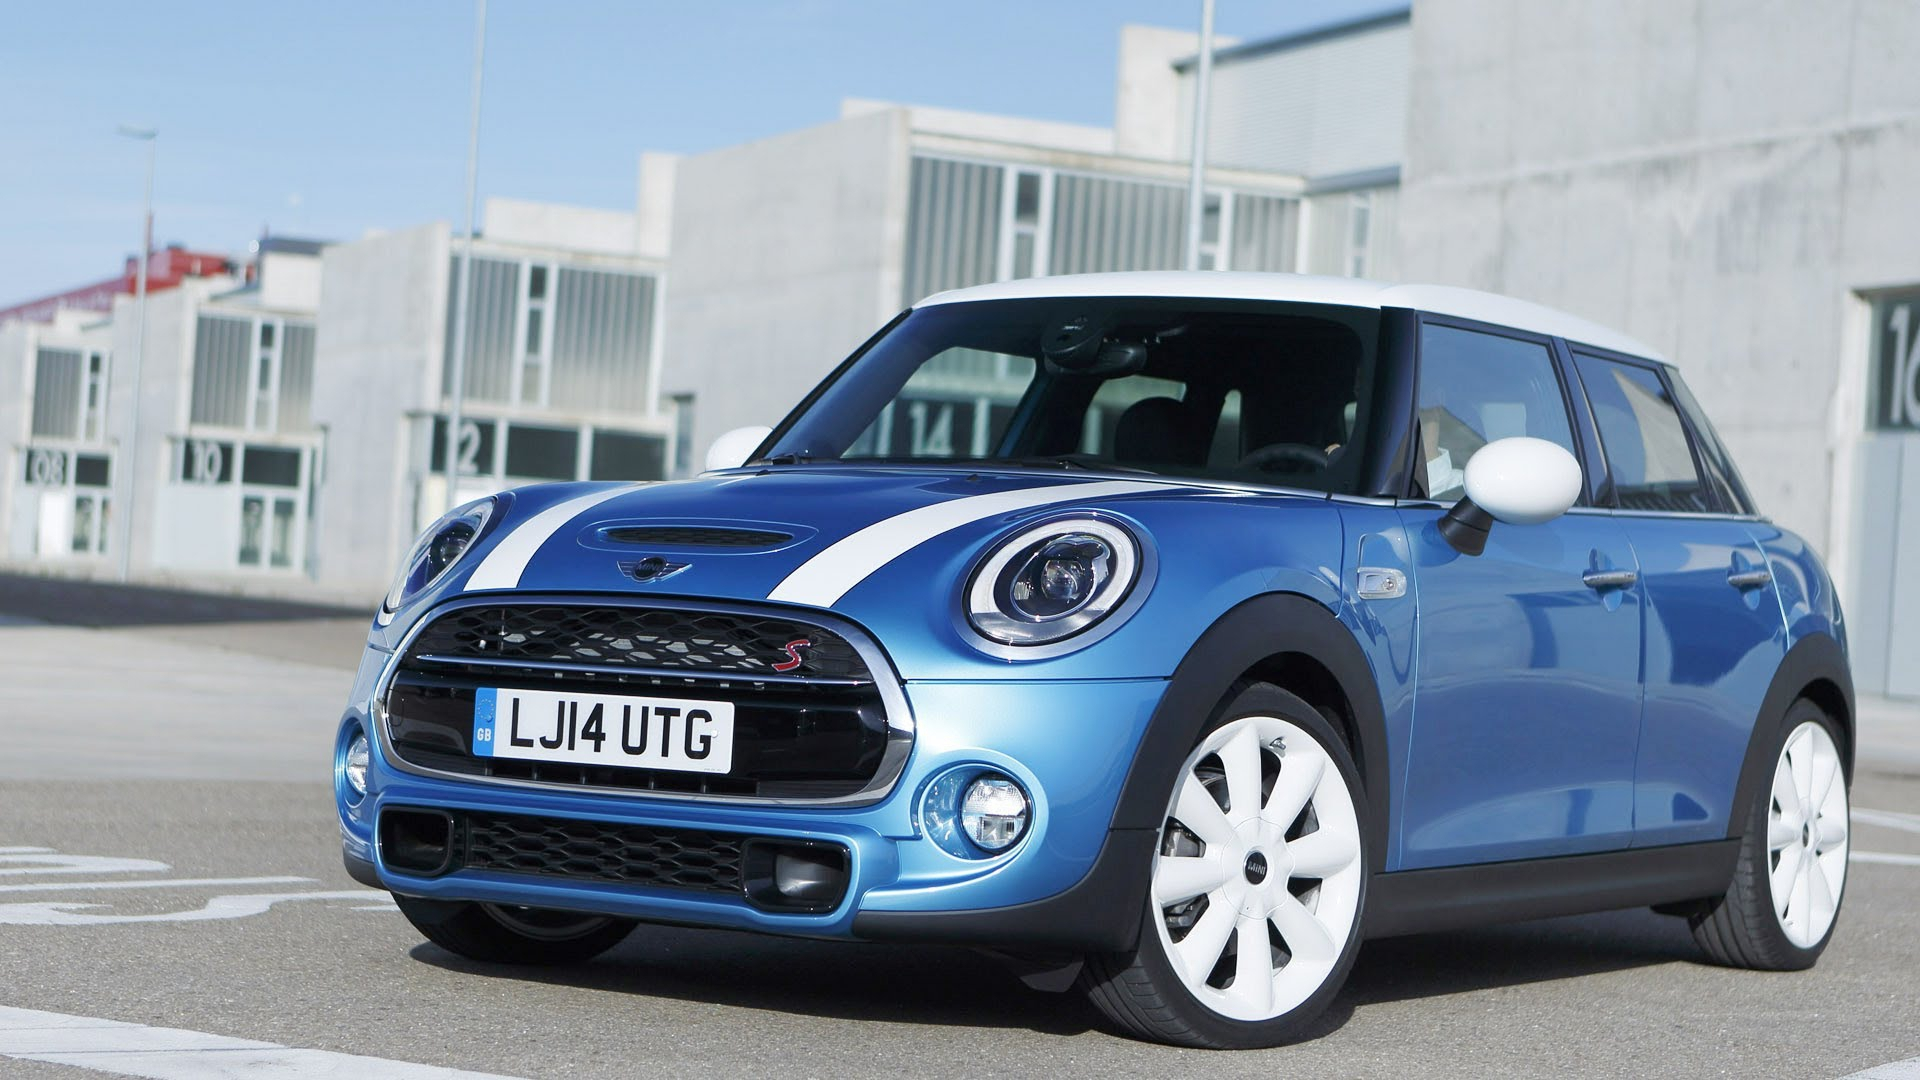 mini cooper wallpapers images photos pictures backgrounds. Black Bedroom Furniture Sets. Home Design Ideas